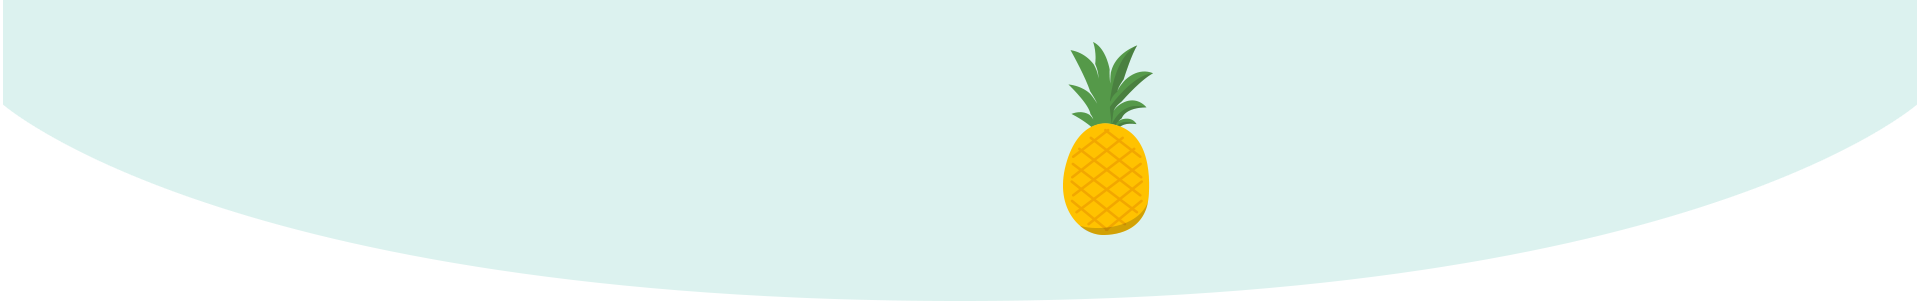 baby size of pineapple week 33